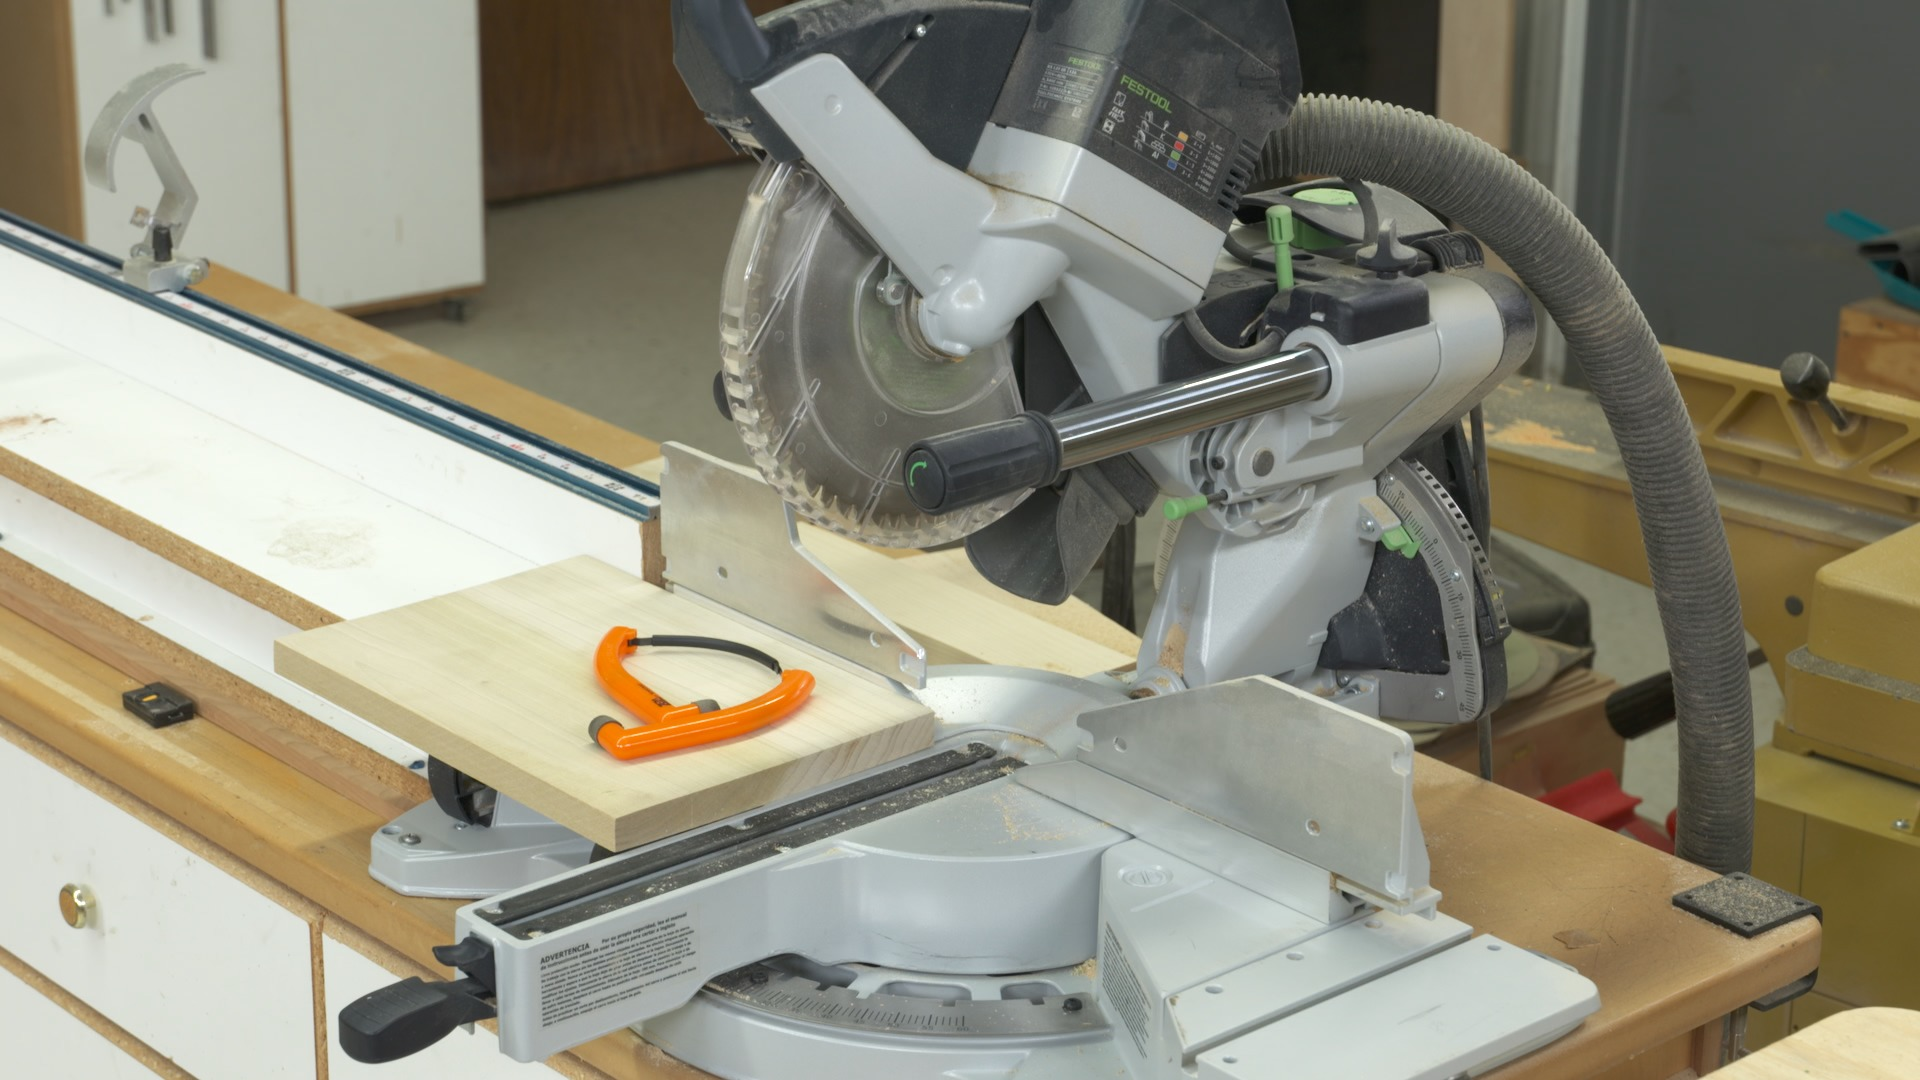 Sharpen Your Skills - Using a Miter Saw Correctly